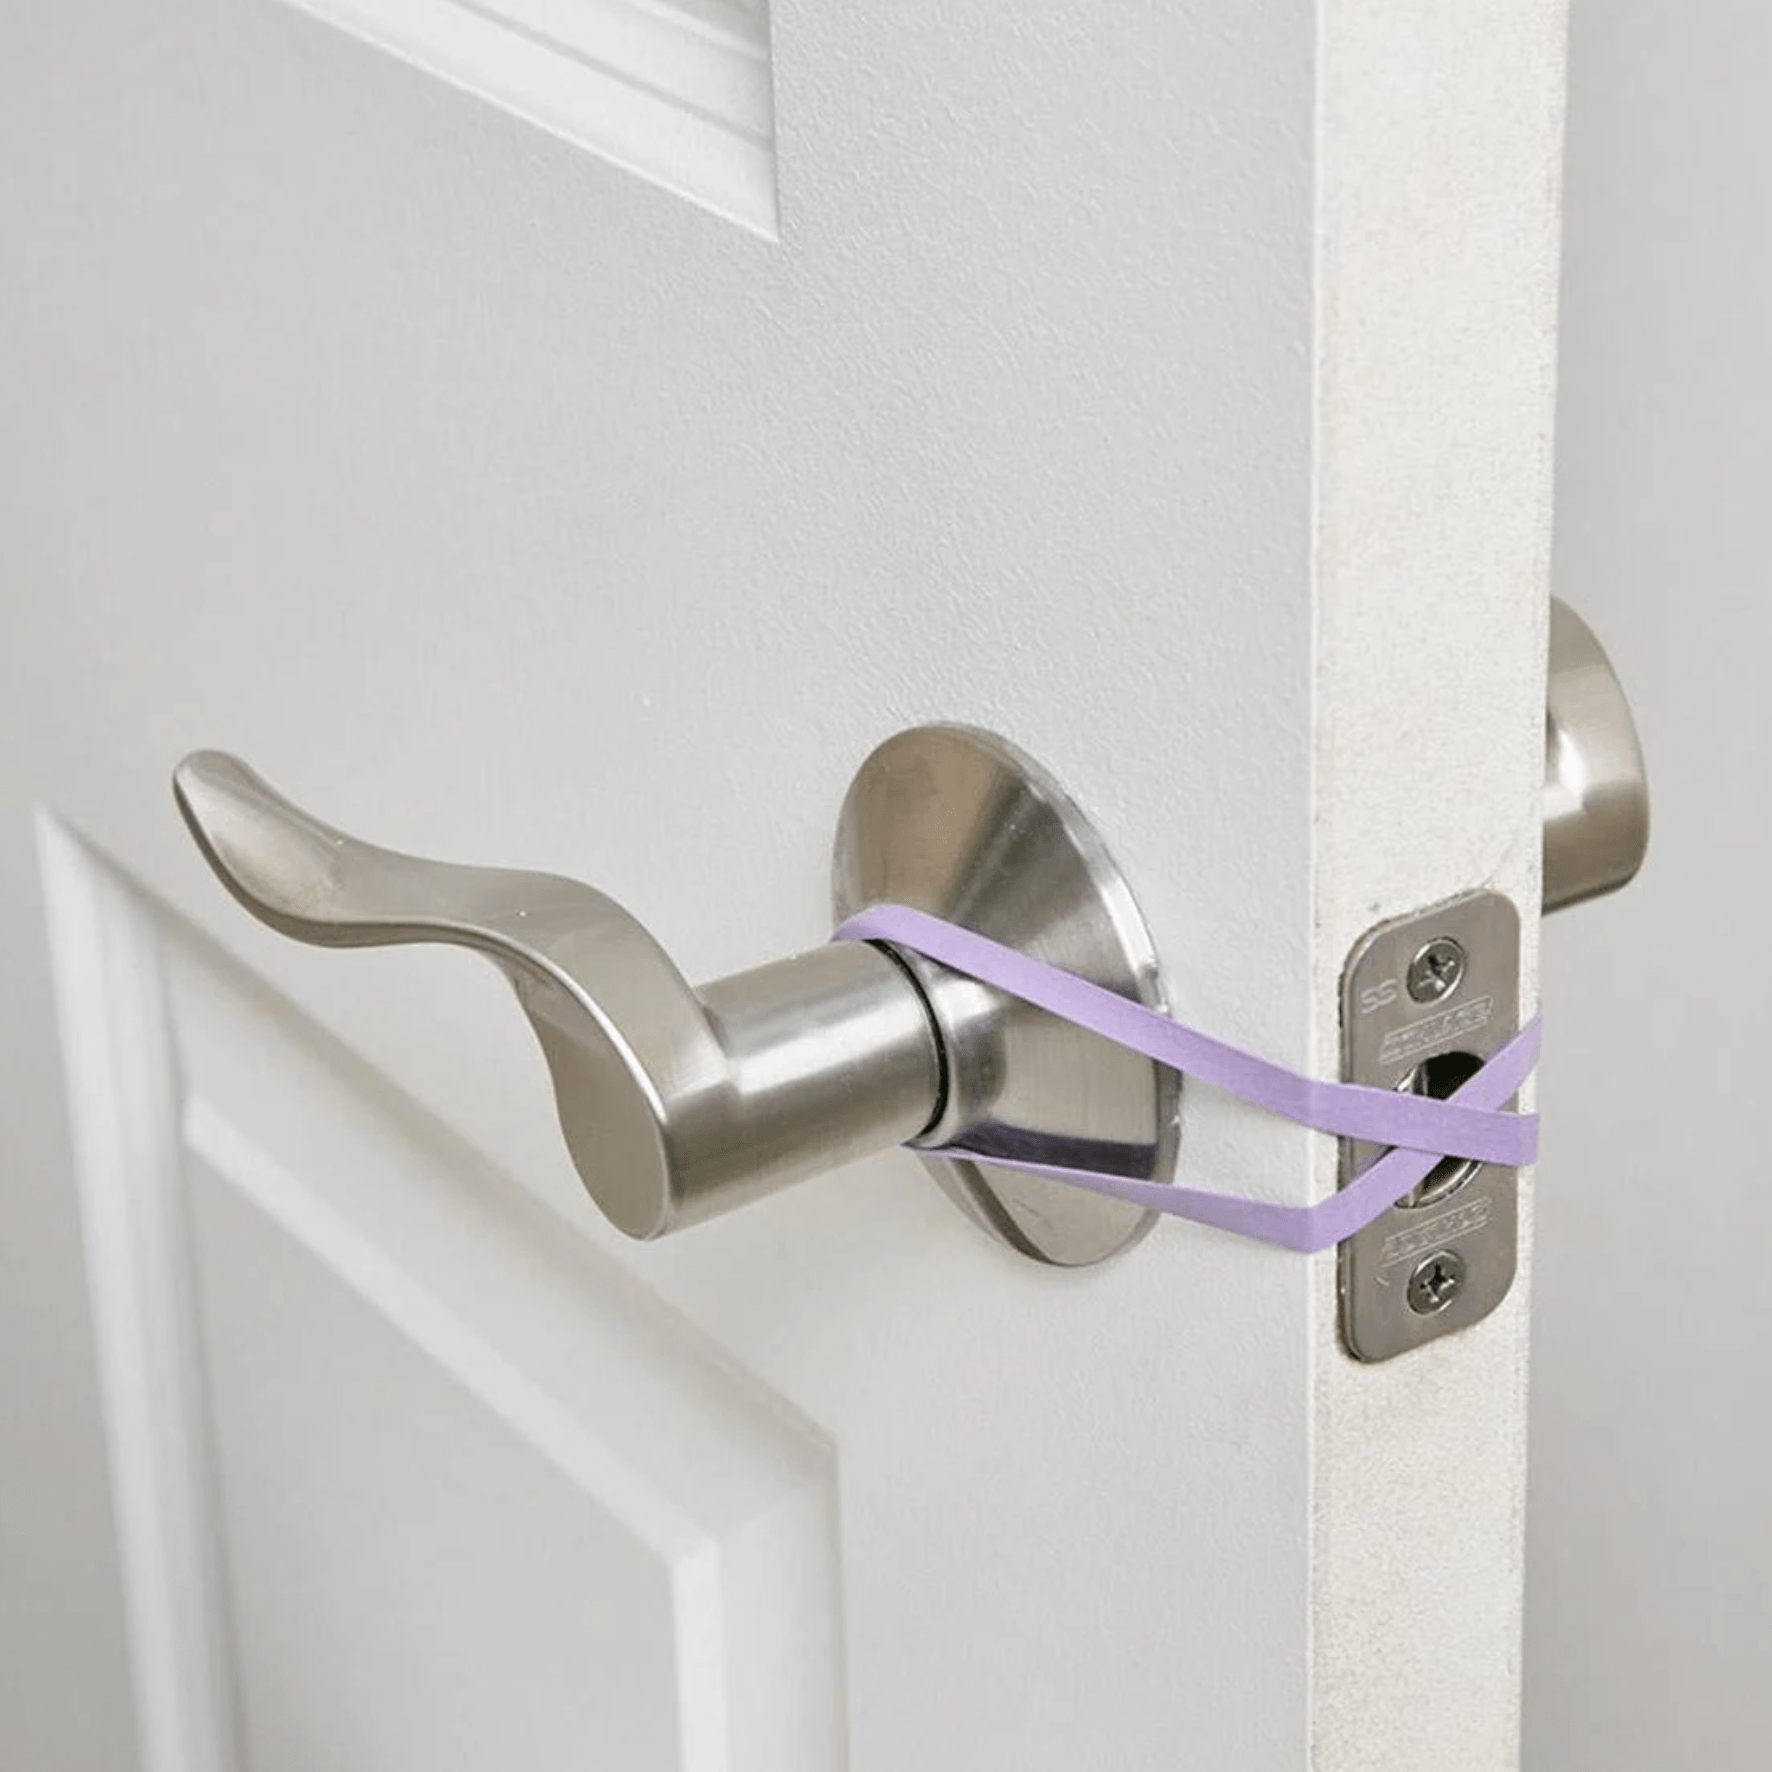 No-Latch (or Hands-Free) Door Trick with rubber band